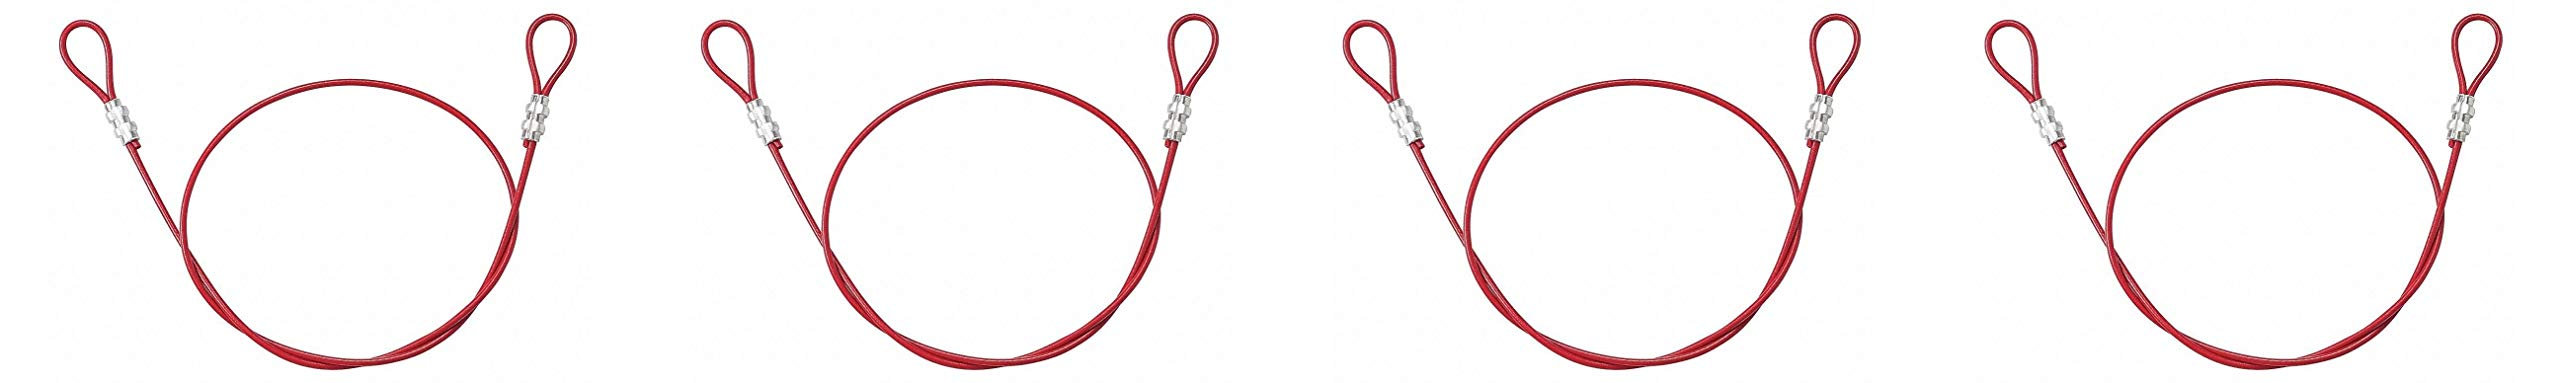 Brady 131064 Double Looped Lockout Cable, Plastic Coated Steel, 4' Cable, Red (Fоur Paсk, Red)